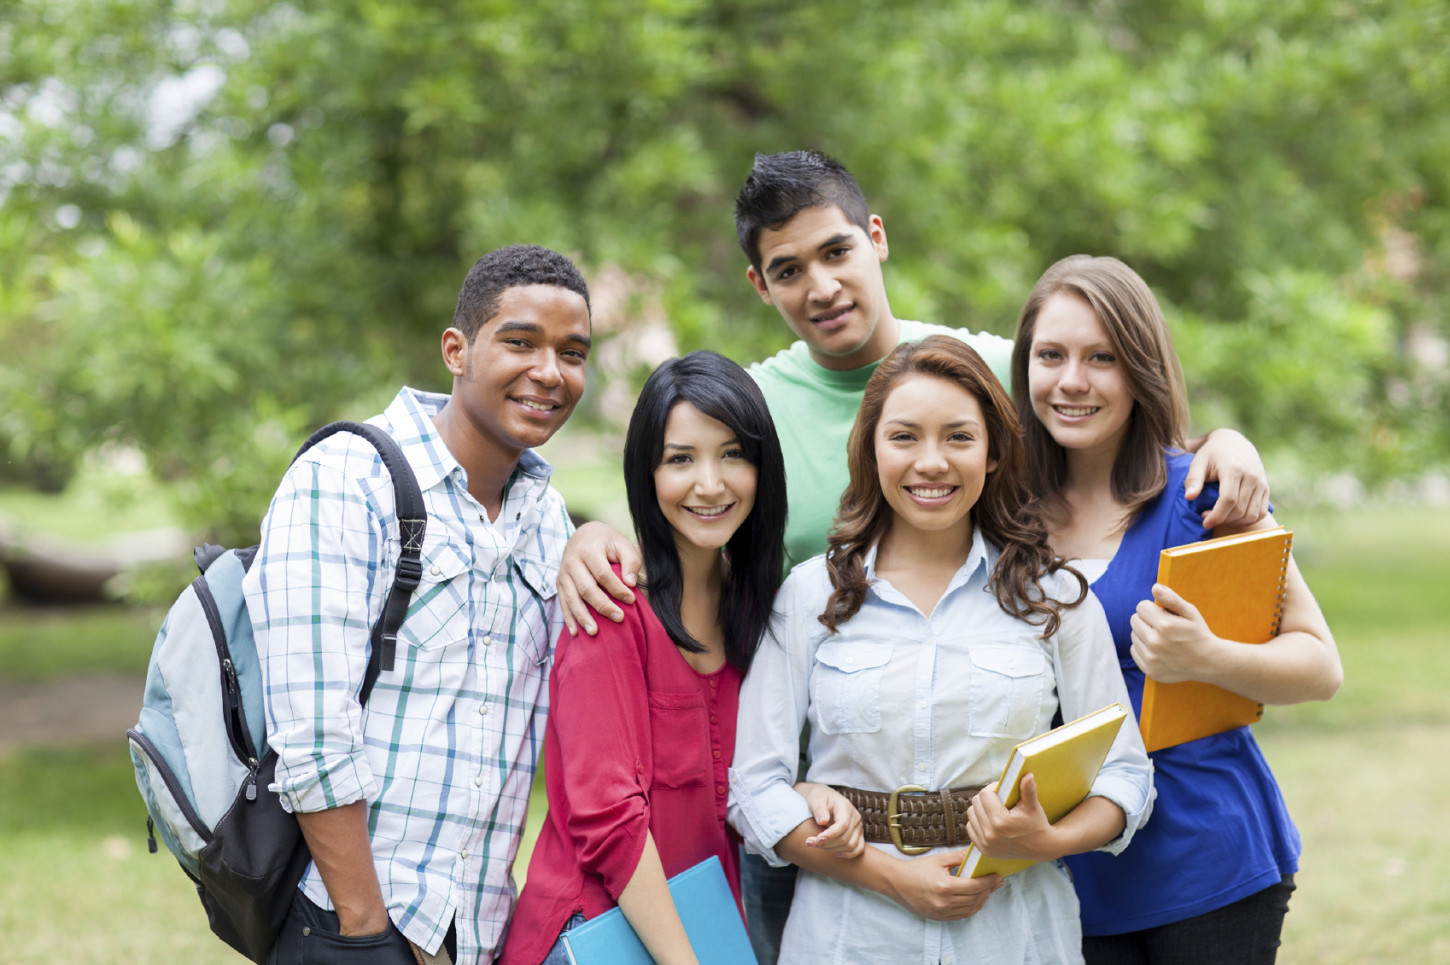 online student essay contest How our free online student scholarship contest works entering to win our free scholarship for college online student scholarship essay contest.